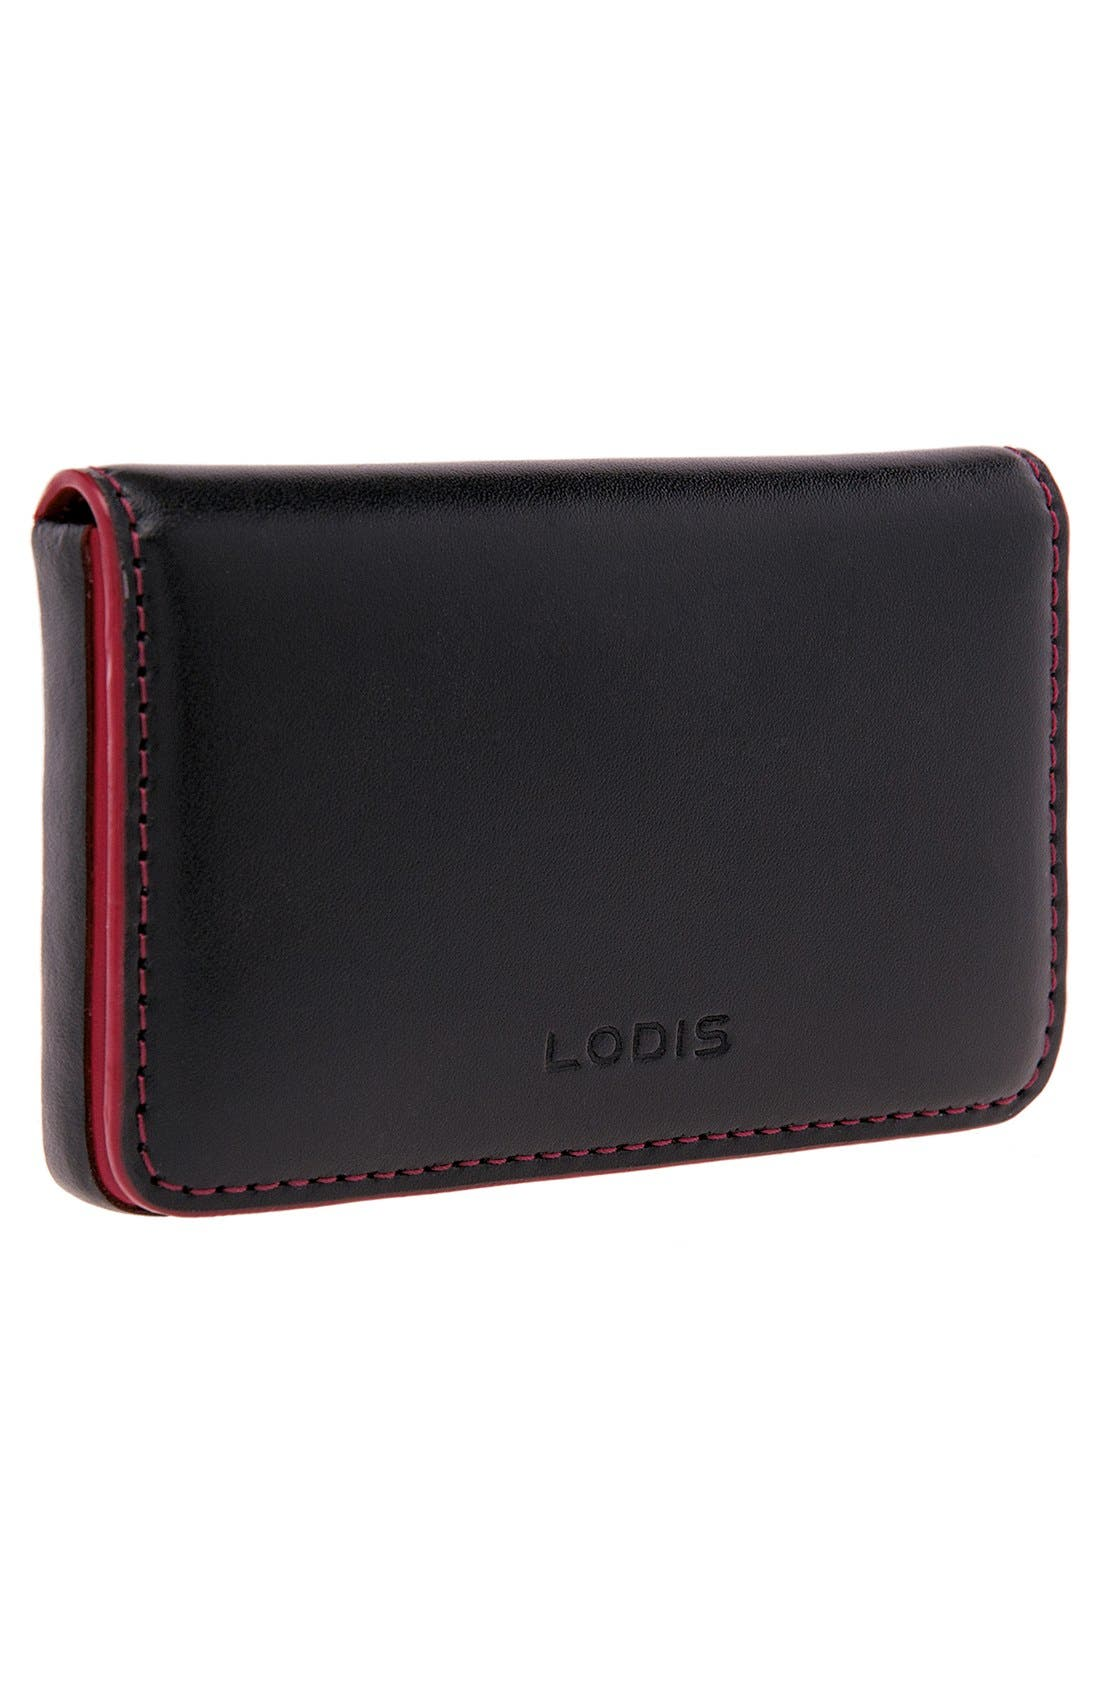 Main Image - Lodis Mini Card Case